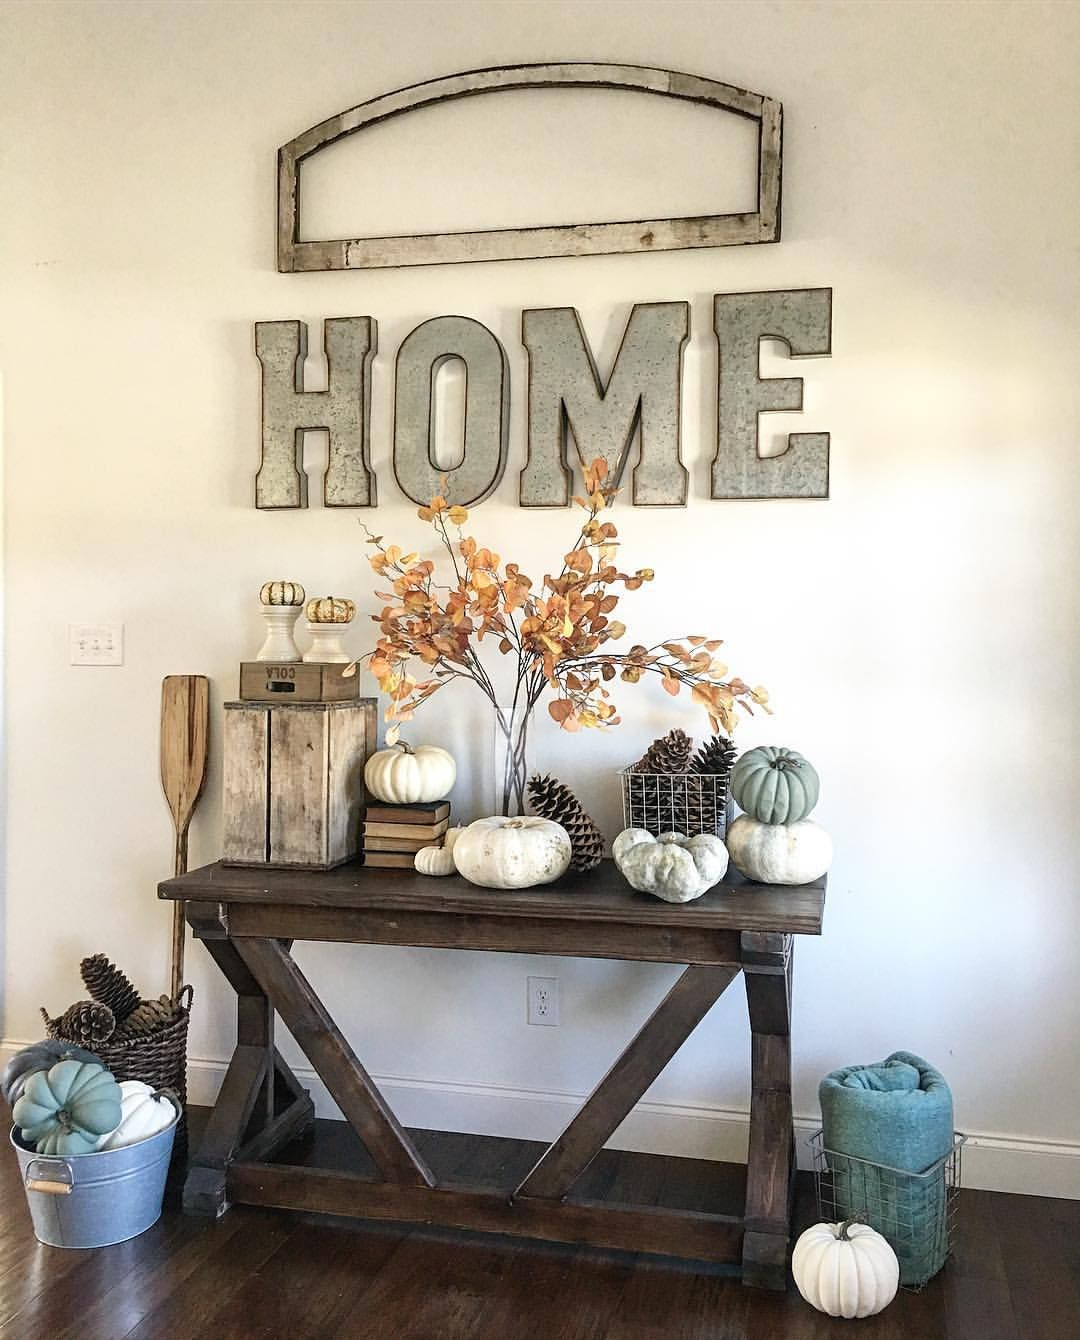 I have these HOME decor wall letters! Here's a way to